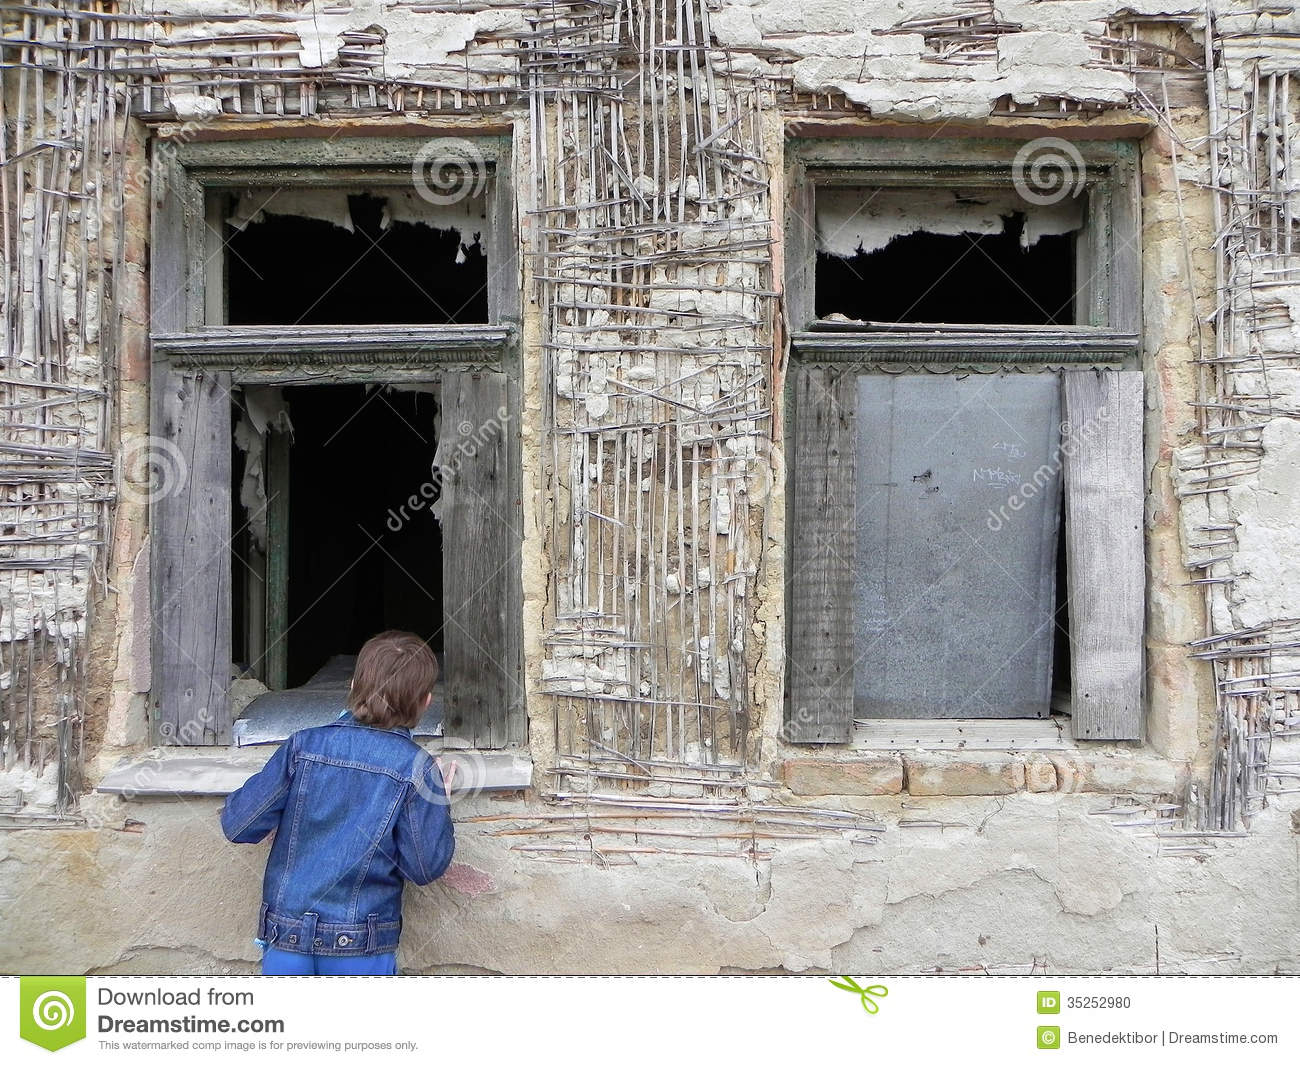 Young boy in front of an old window